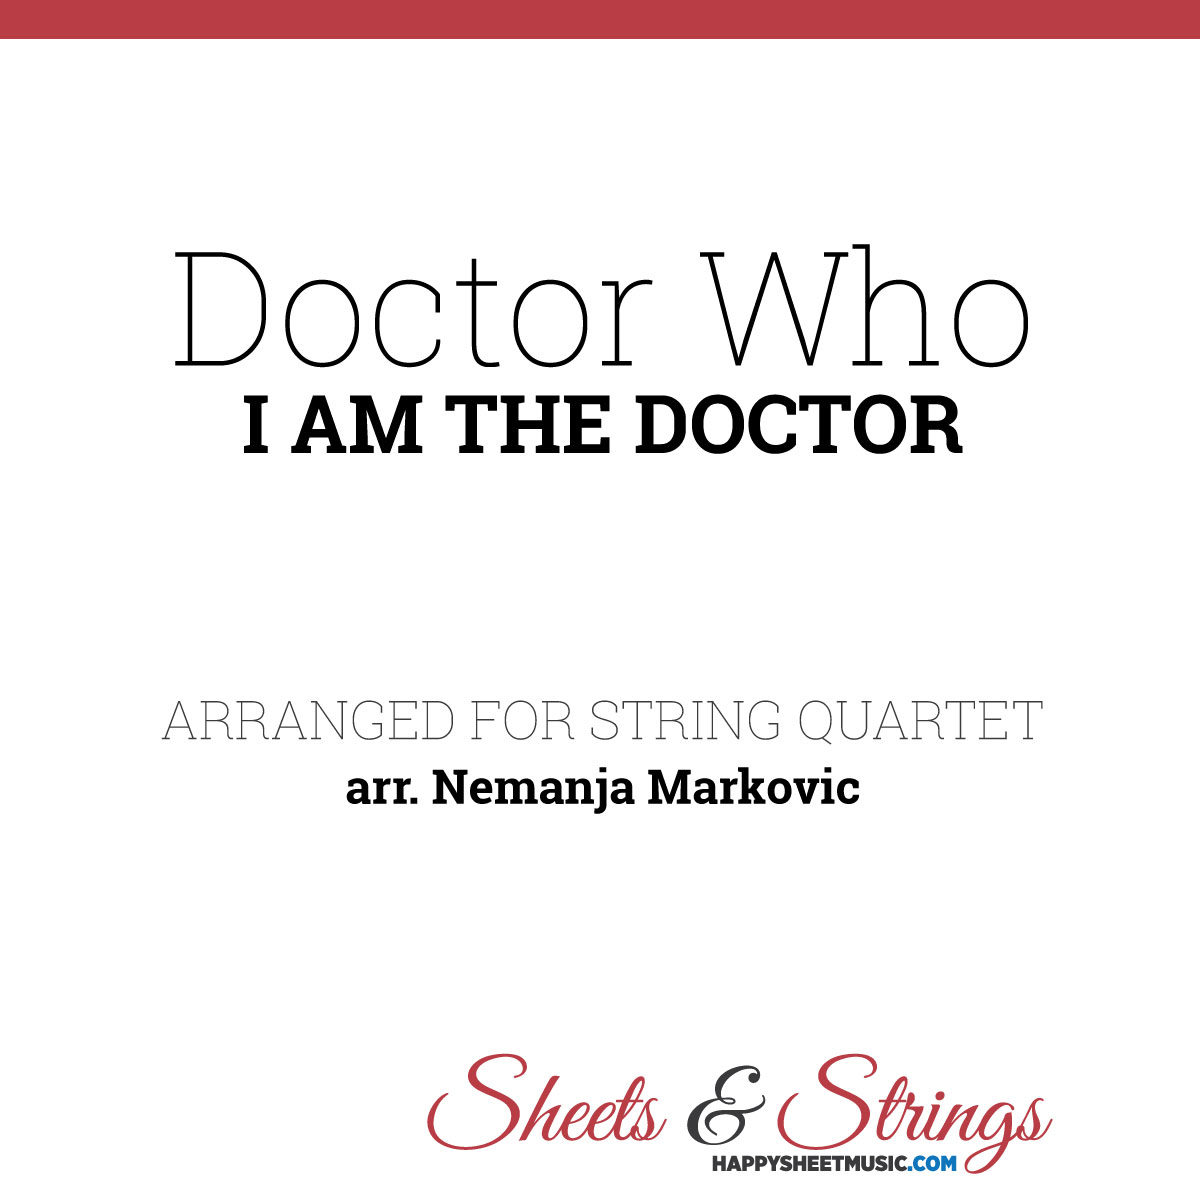 Doctor Who Theme - I Am The Doctor - Sheet Music for String Quartet - Music Arrangement for String Quartet